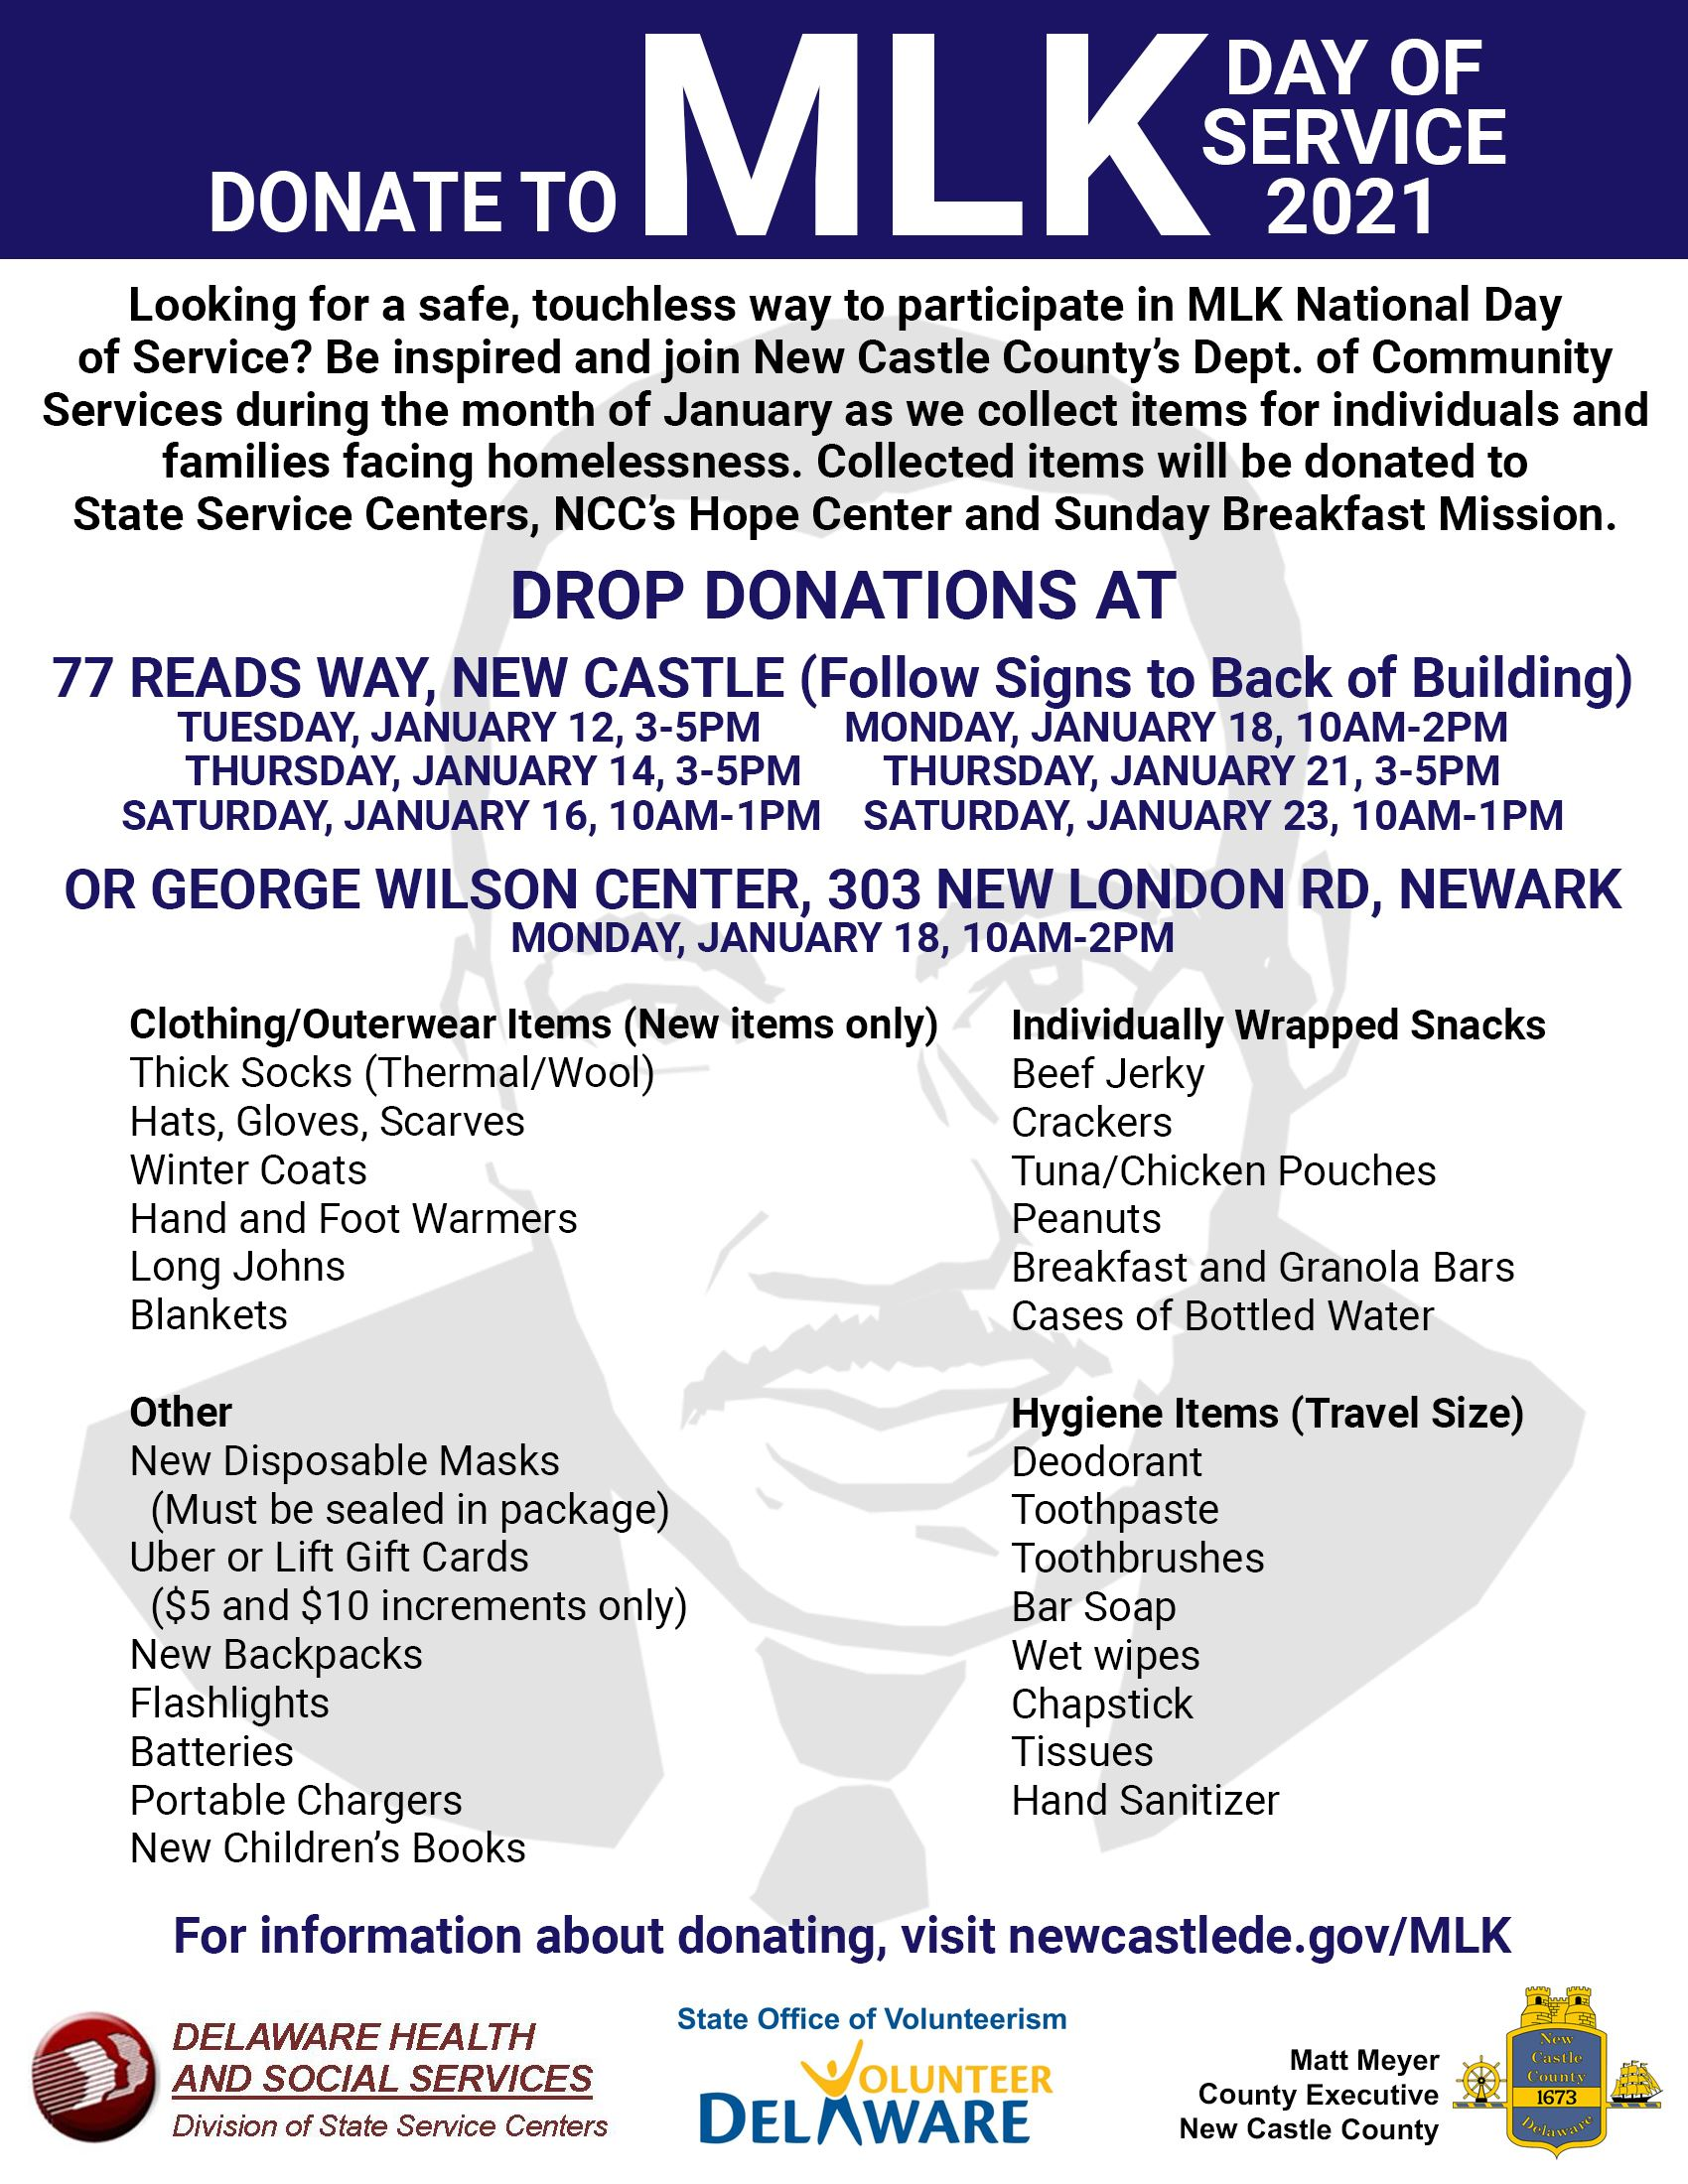 MLK Day of Service 2021 flyer